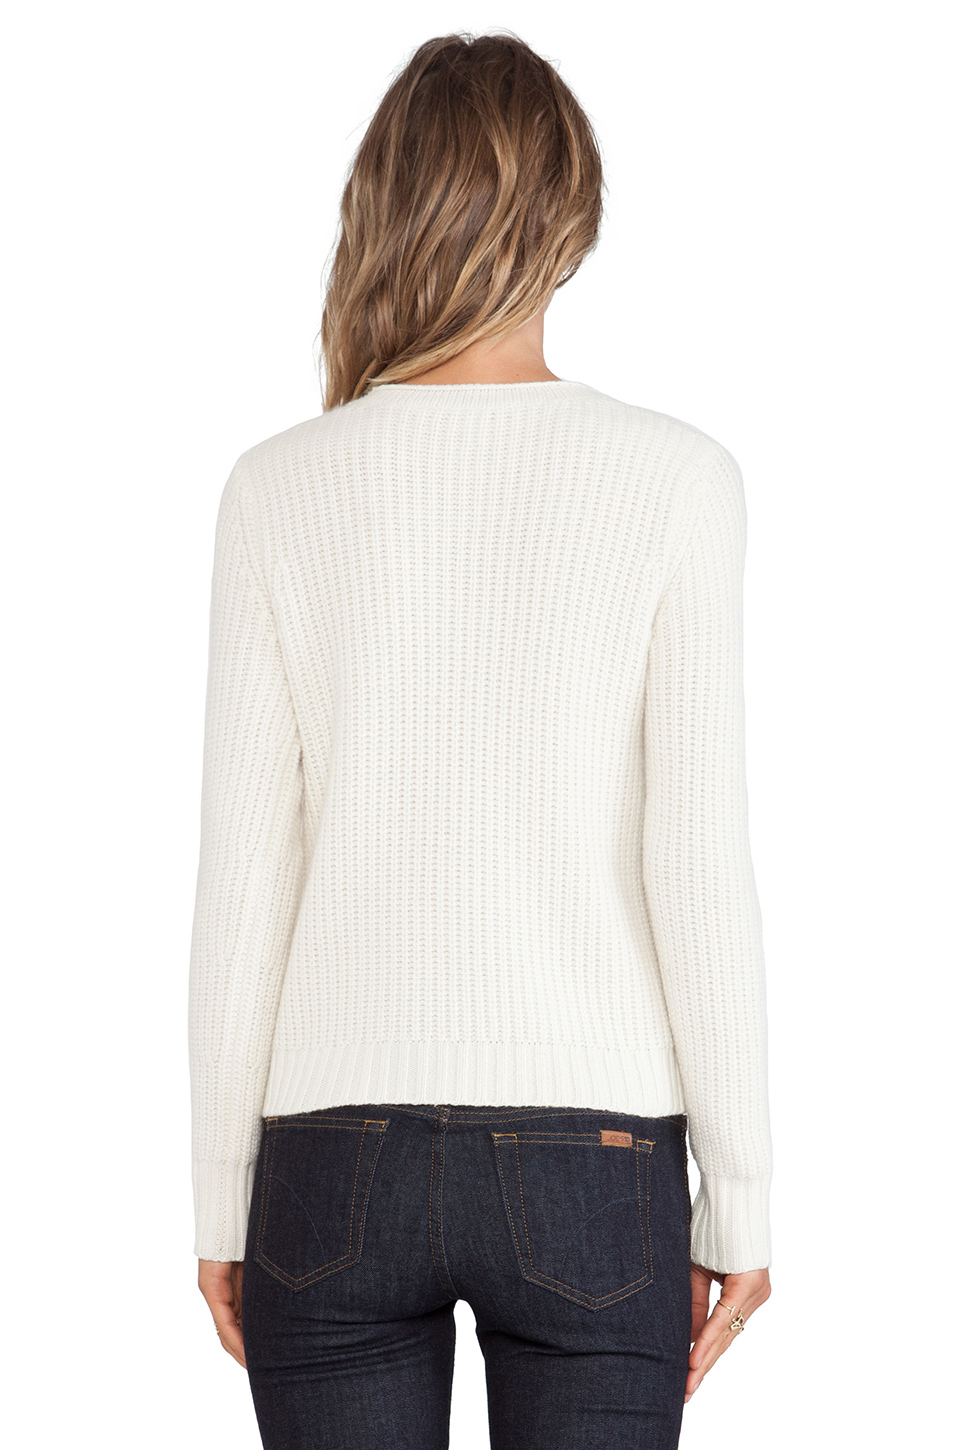 autumn cashmere shaker stitch sweater in white